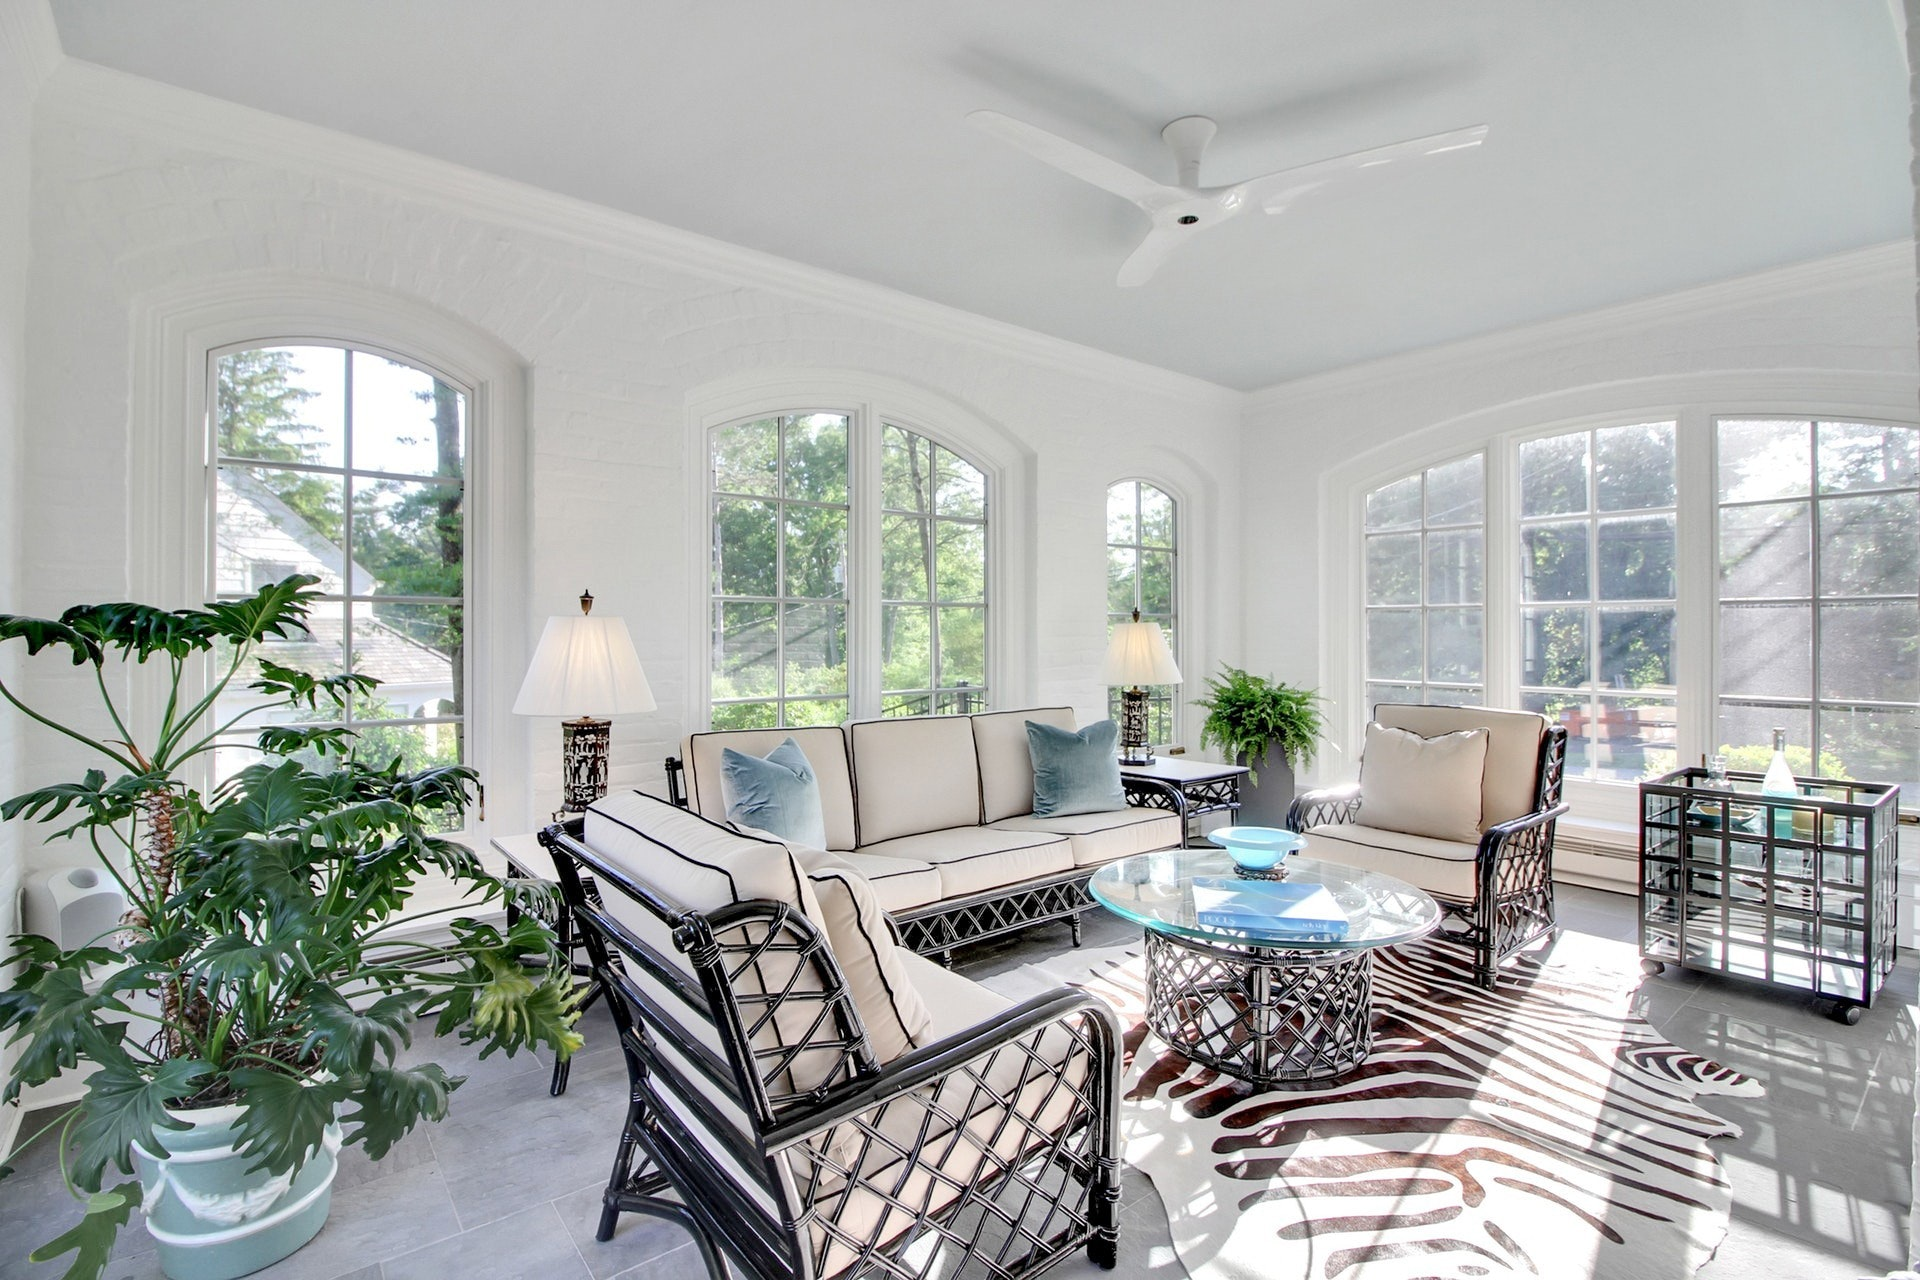 74 Taylor Road Sunroom